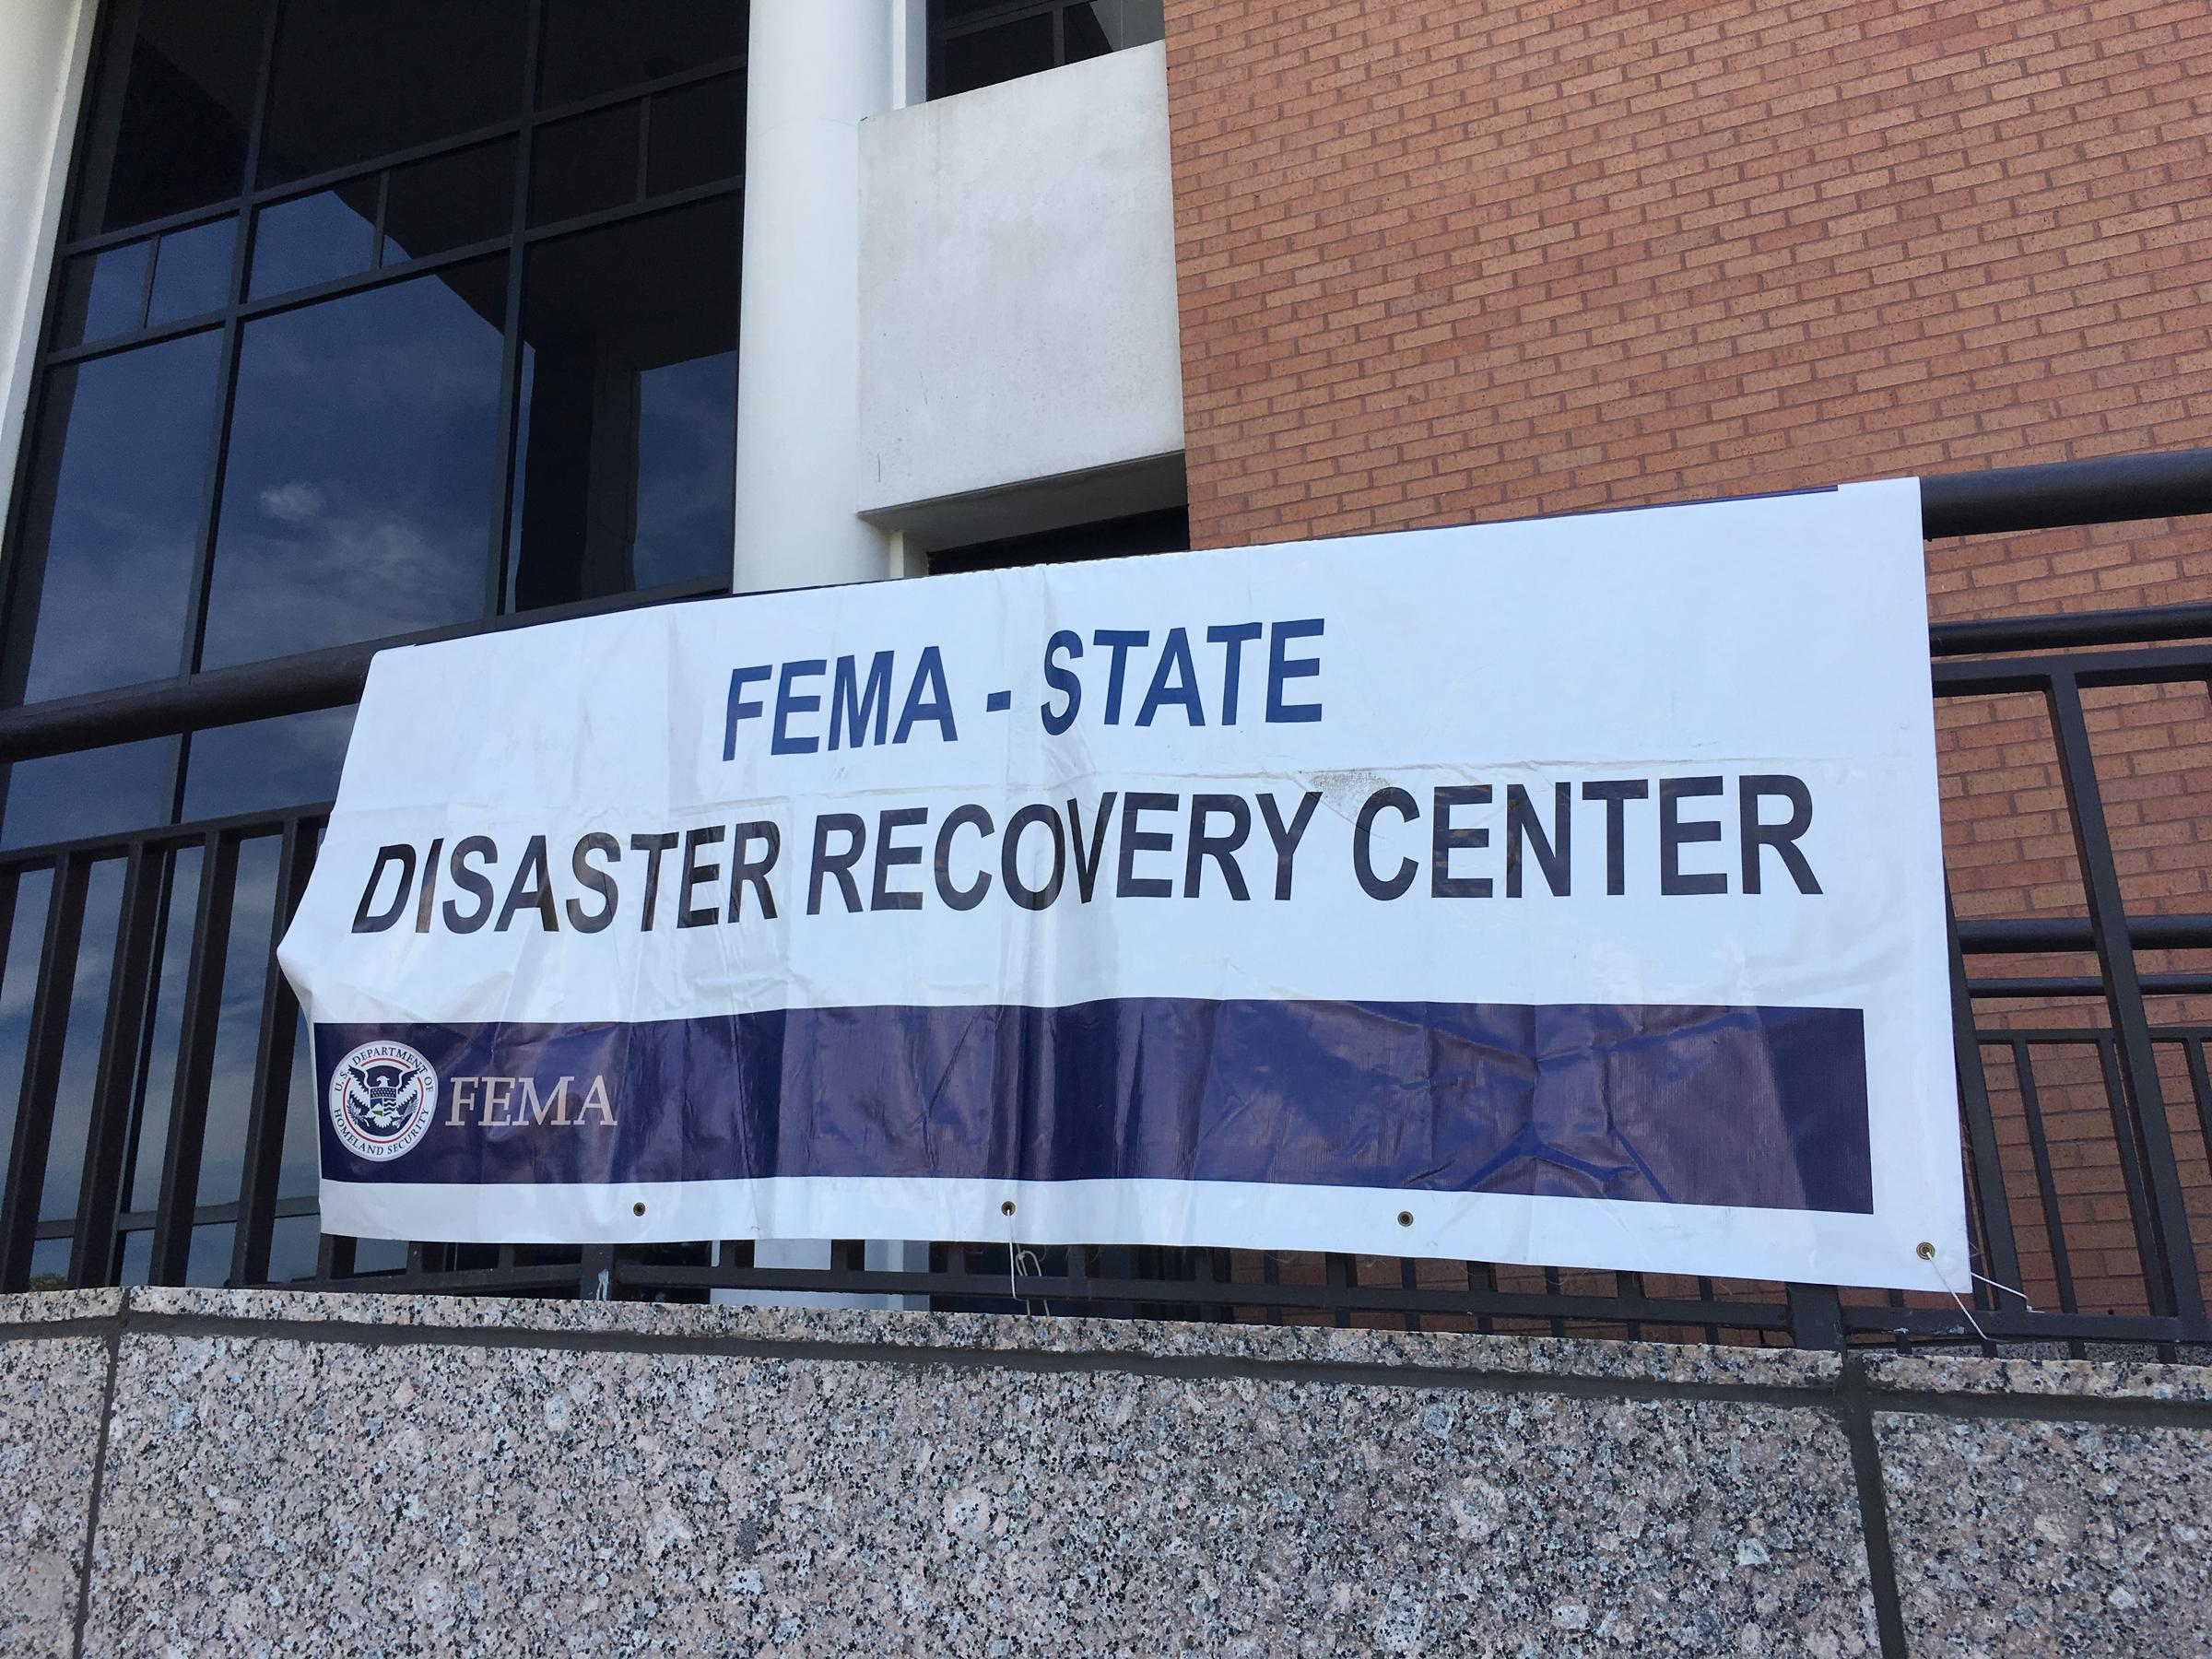 Disaster recovery centers open in Summerville, Kingstree following Matthew